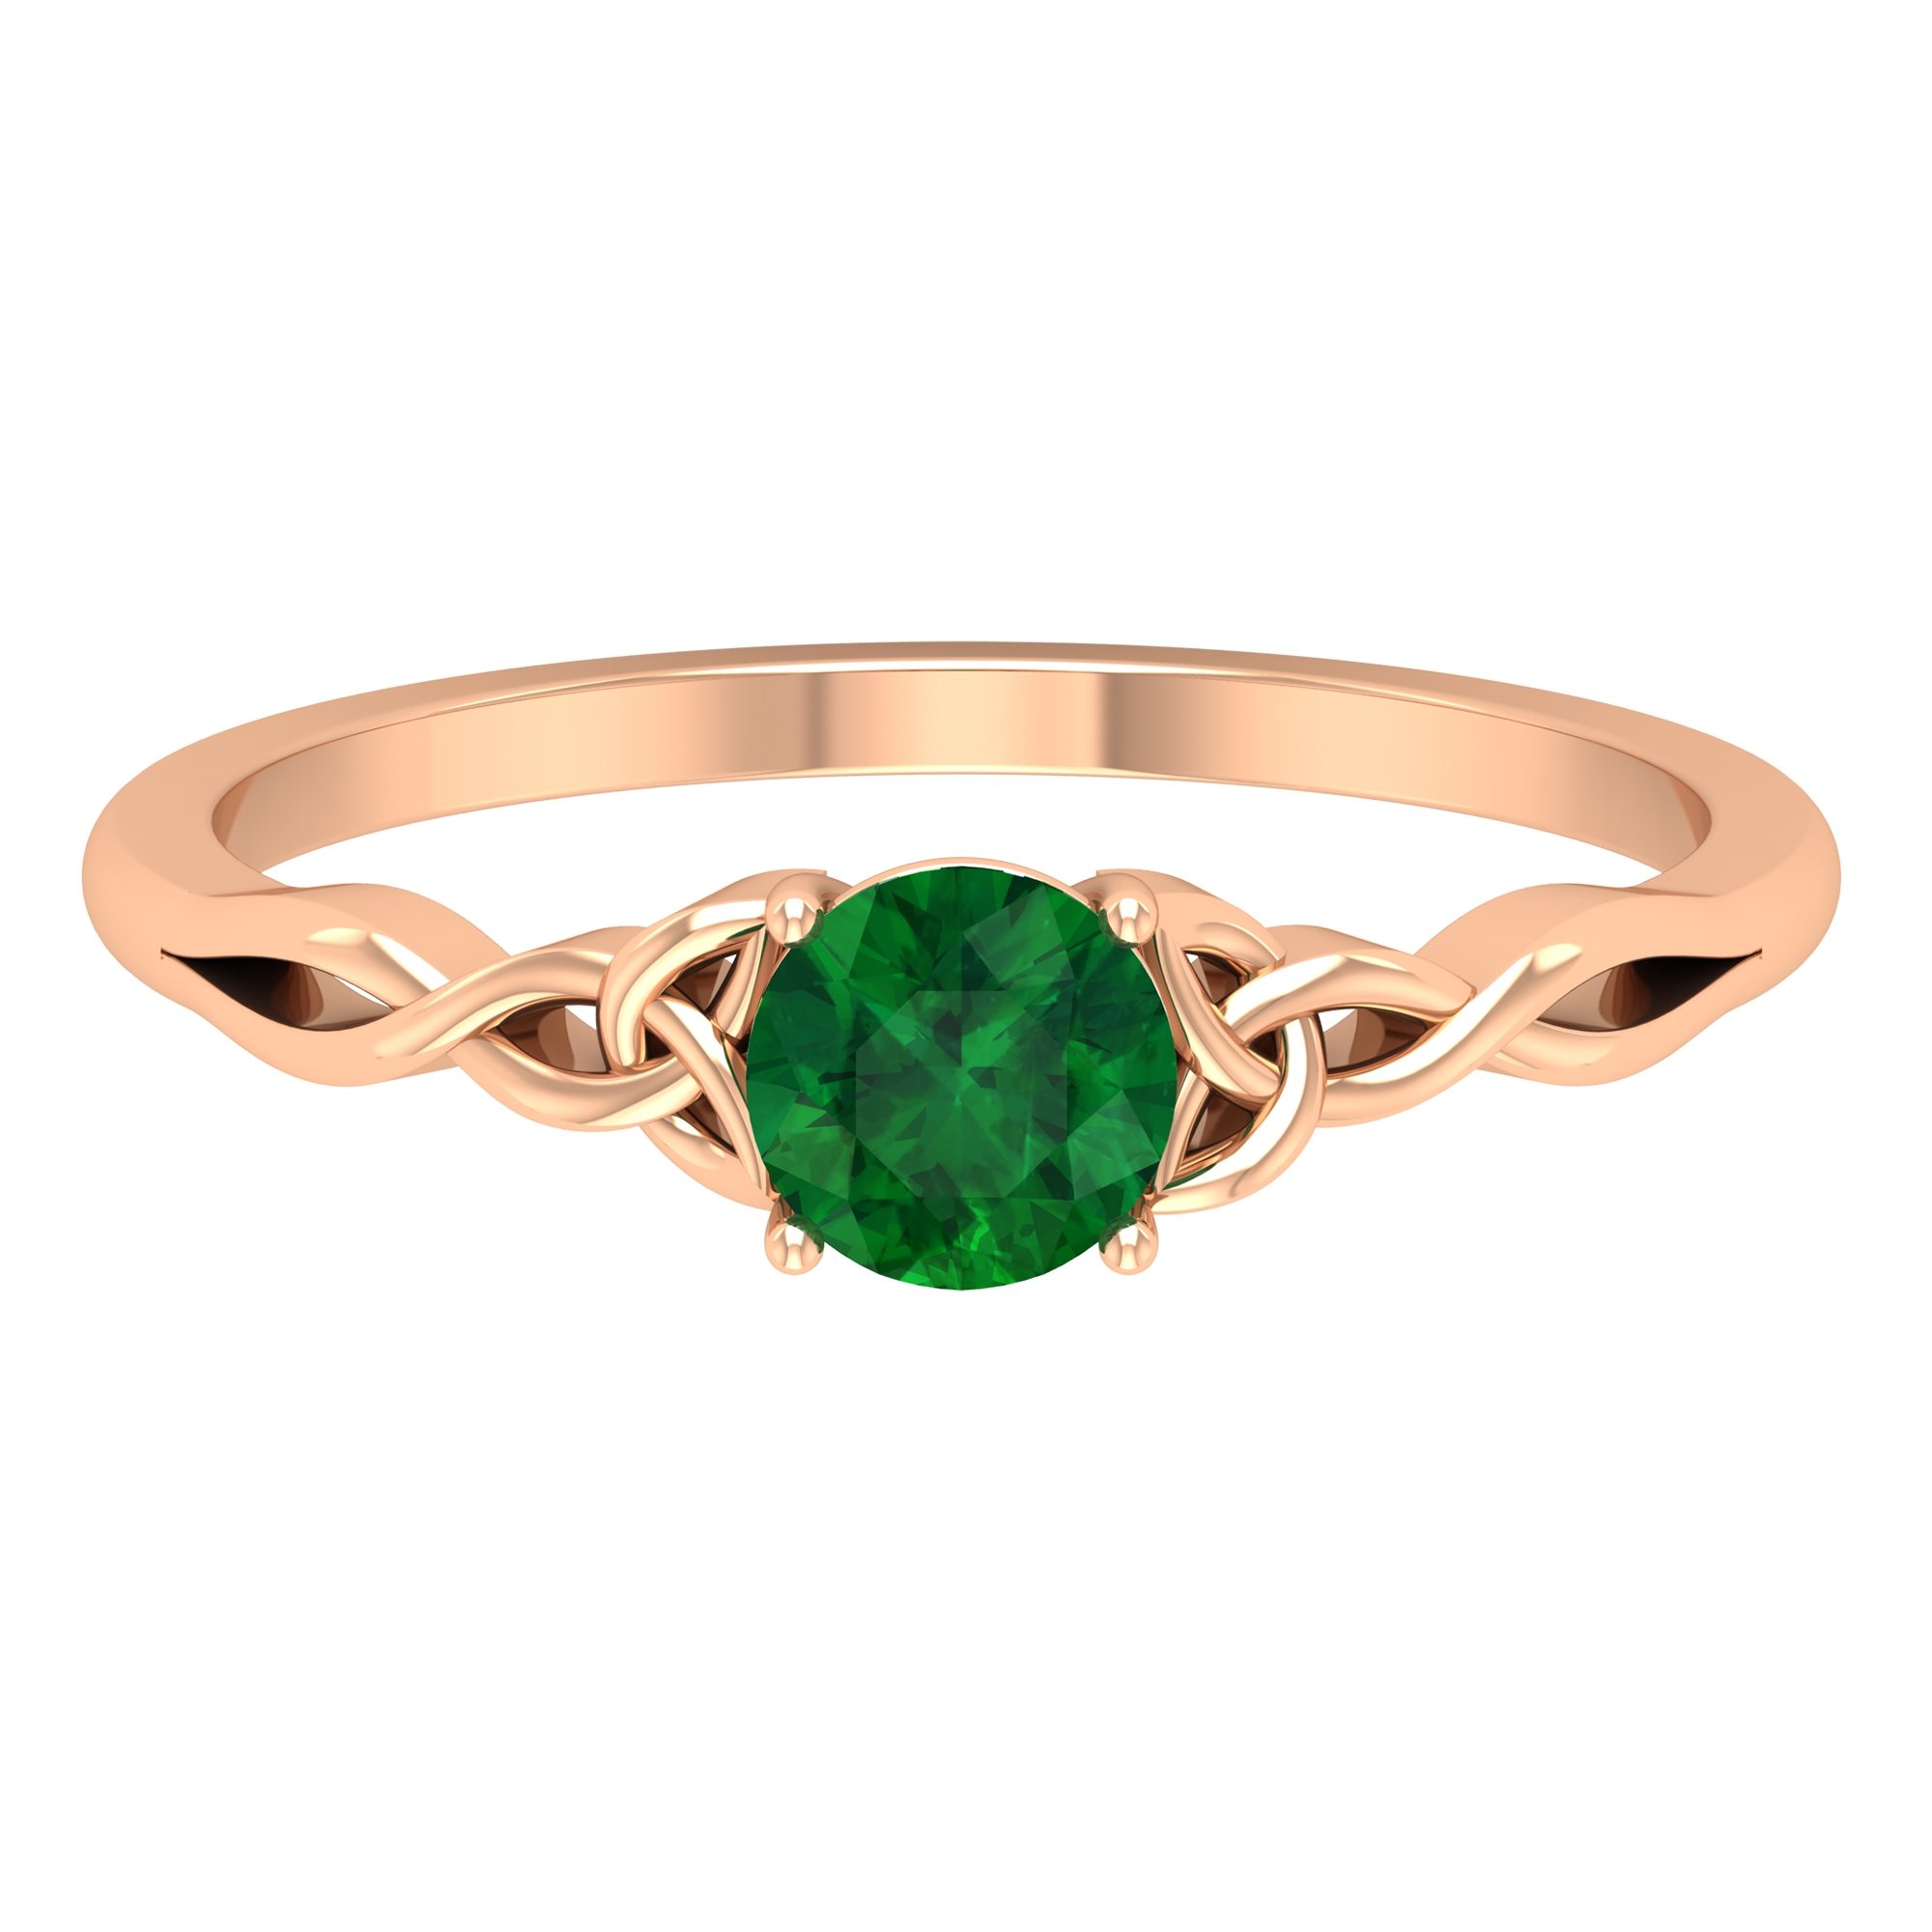 5 MM Round Shape Emerald Solitaire Ring in Four Prong Setting with Celtic Shank